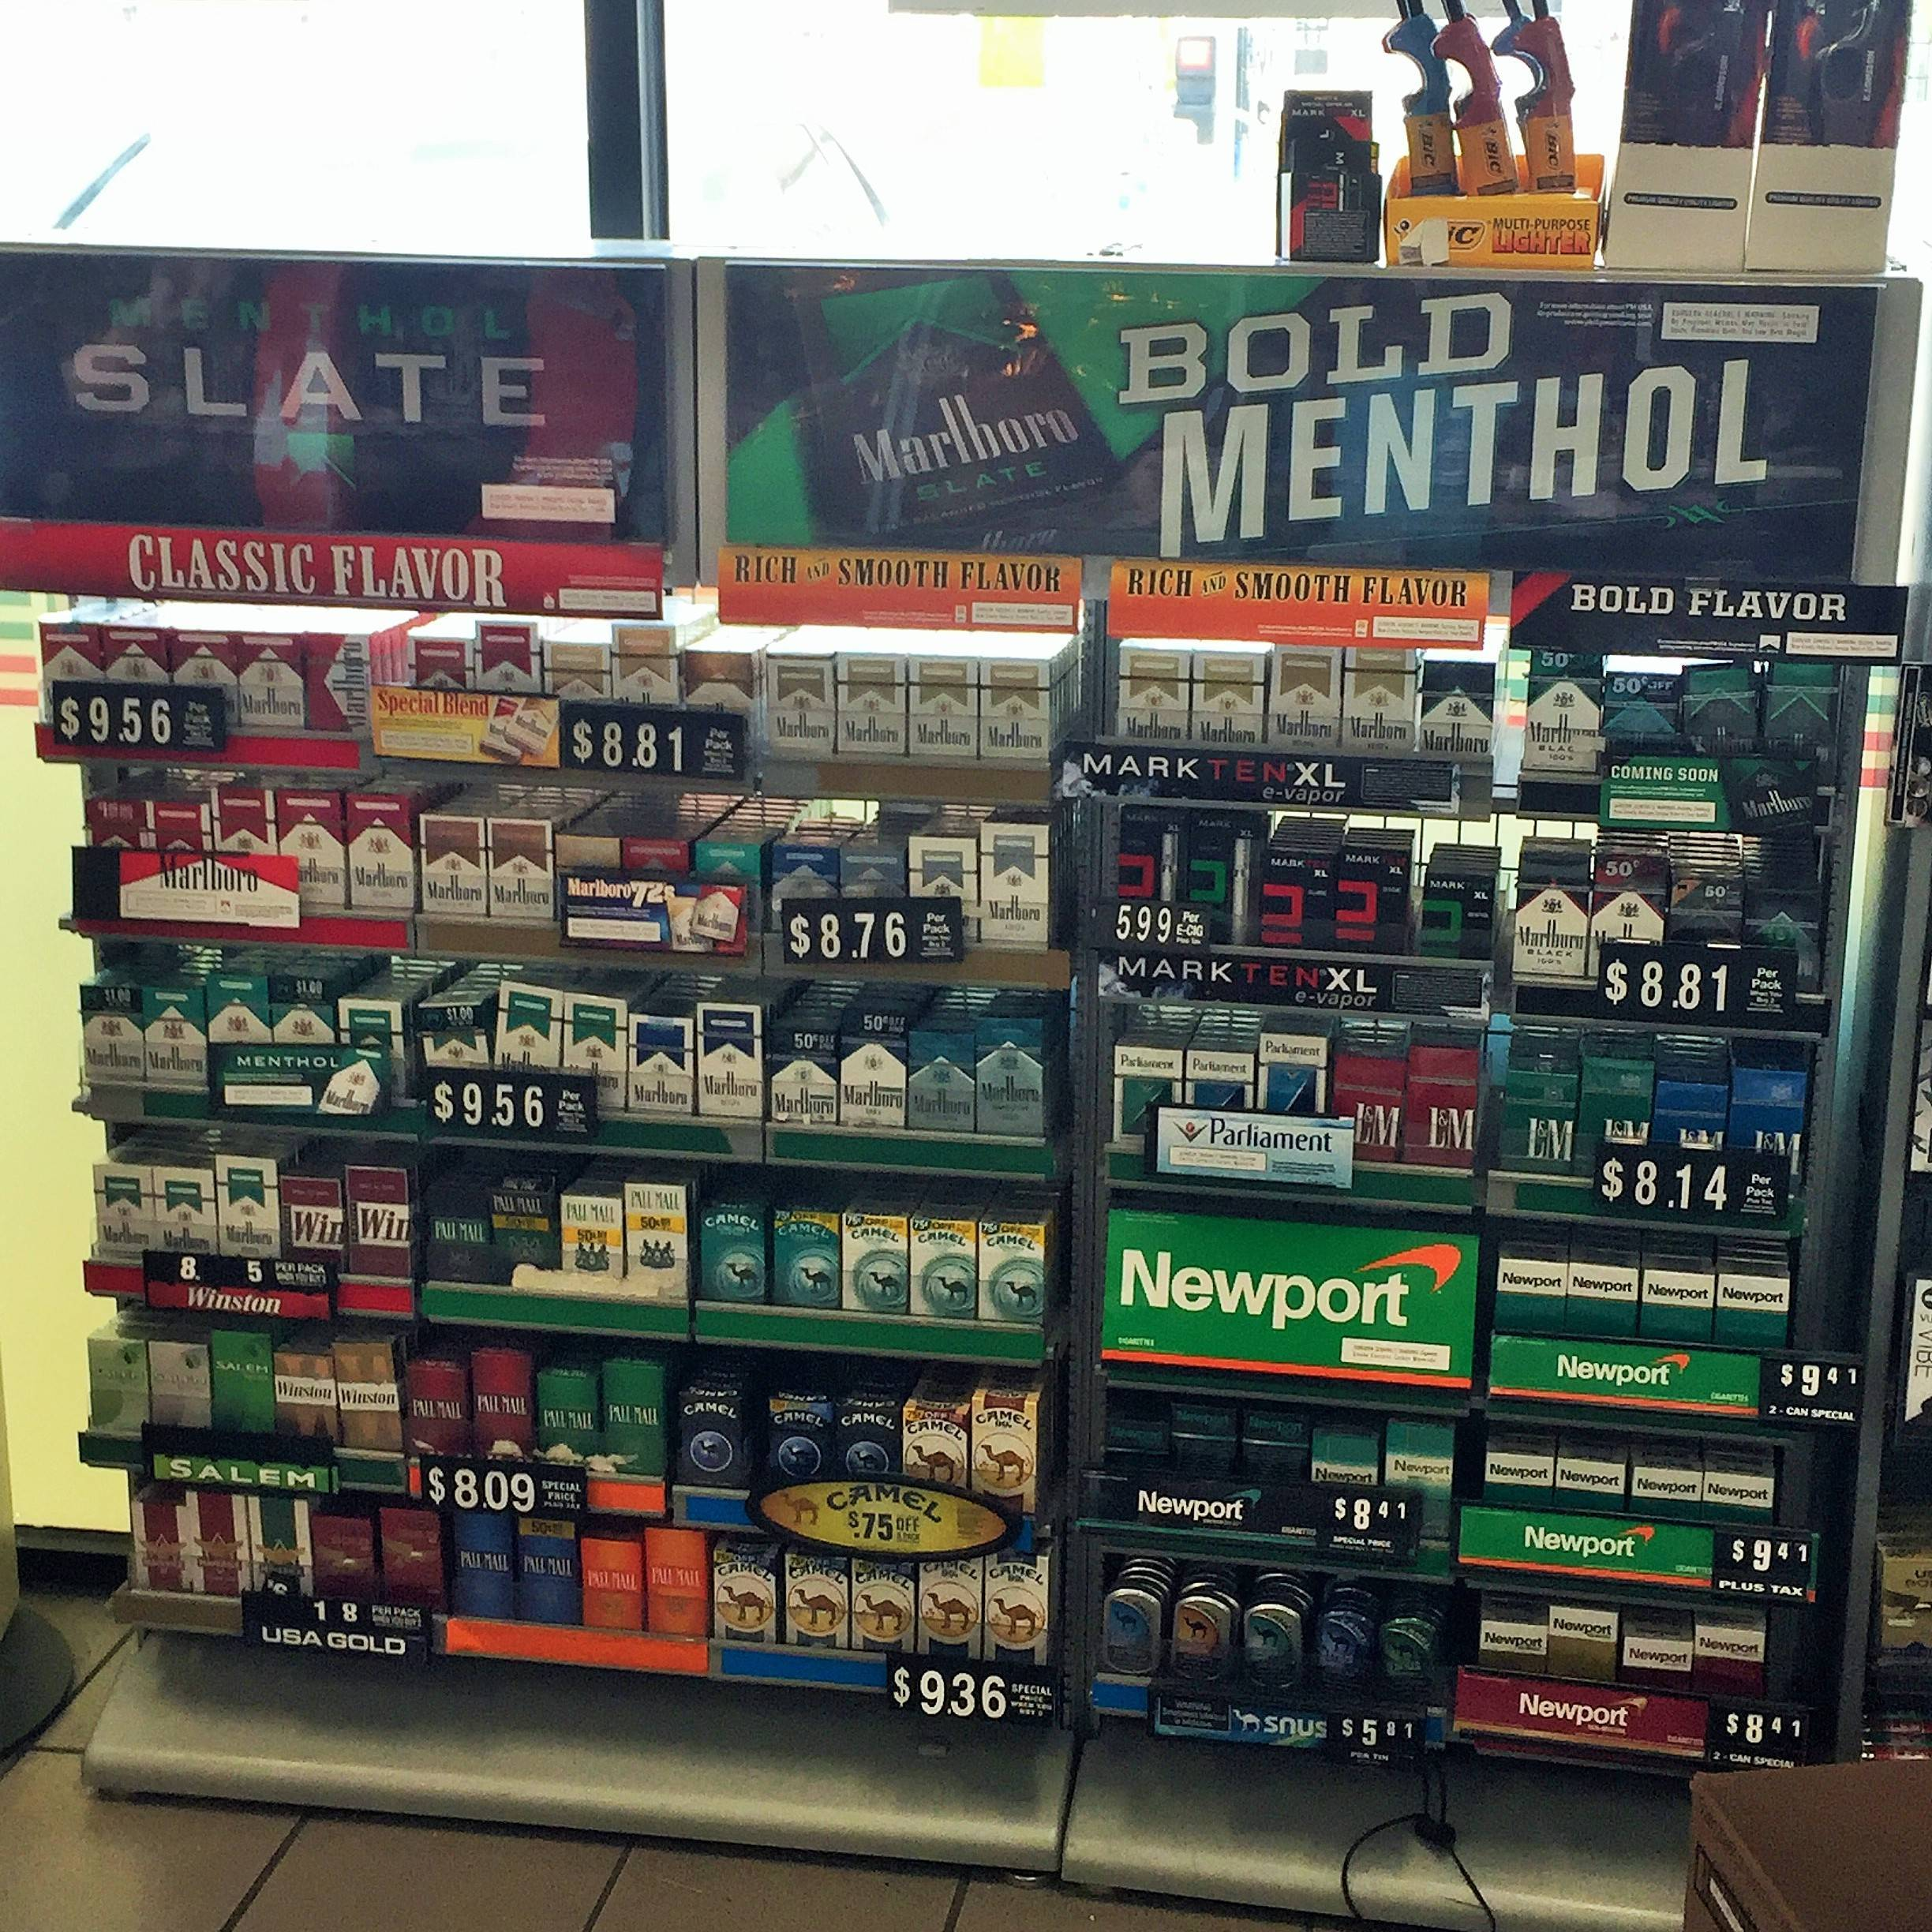 New  Law on Tobacco Purchases Takes Effect in Cattaraugus County